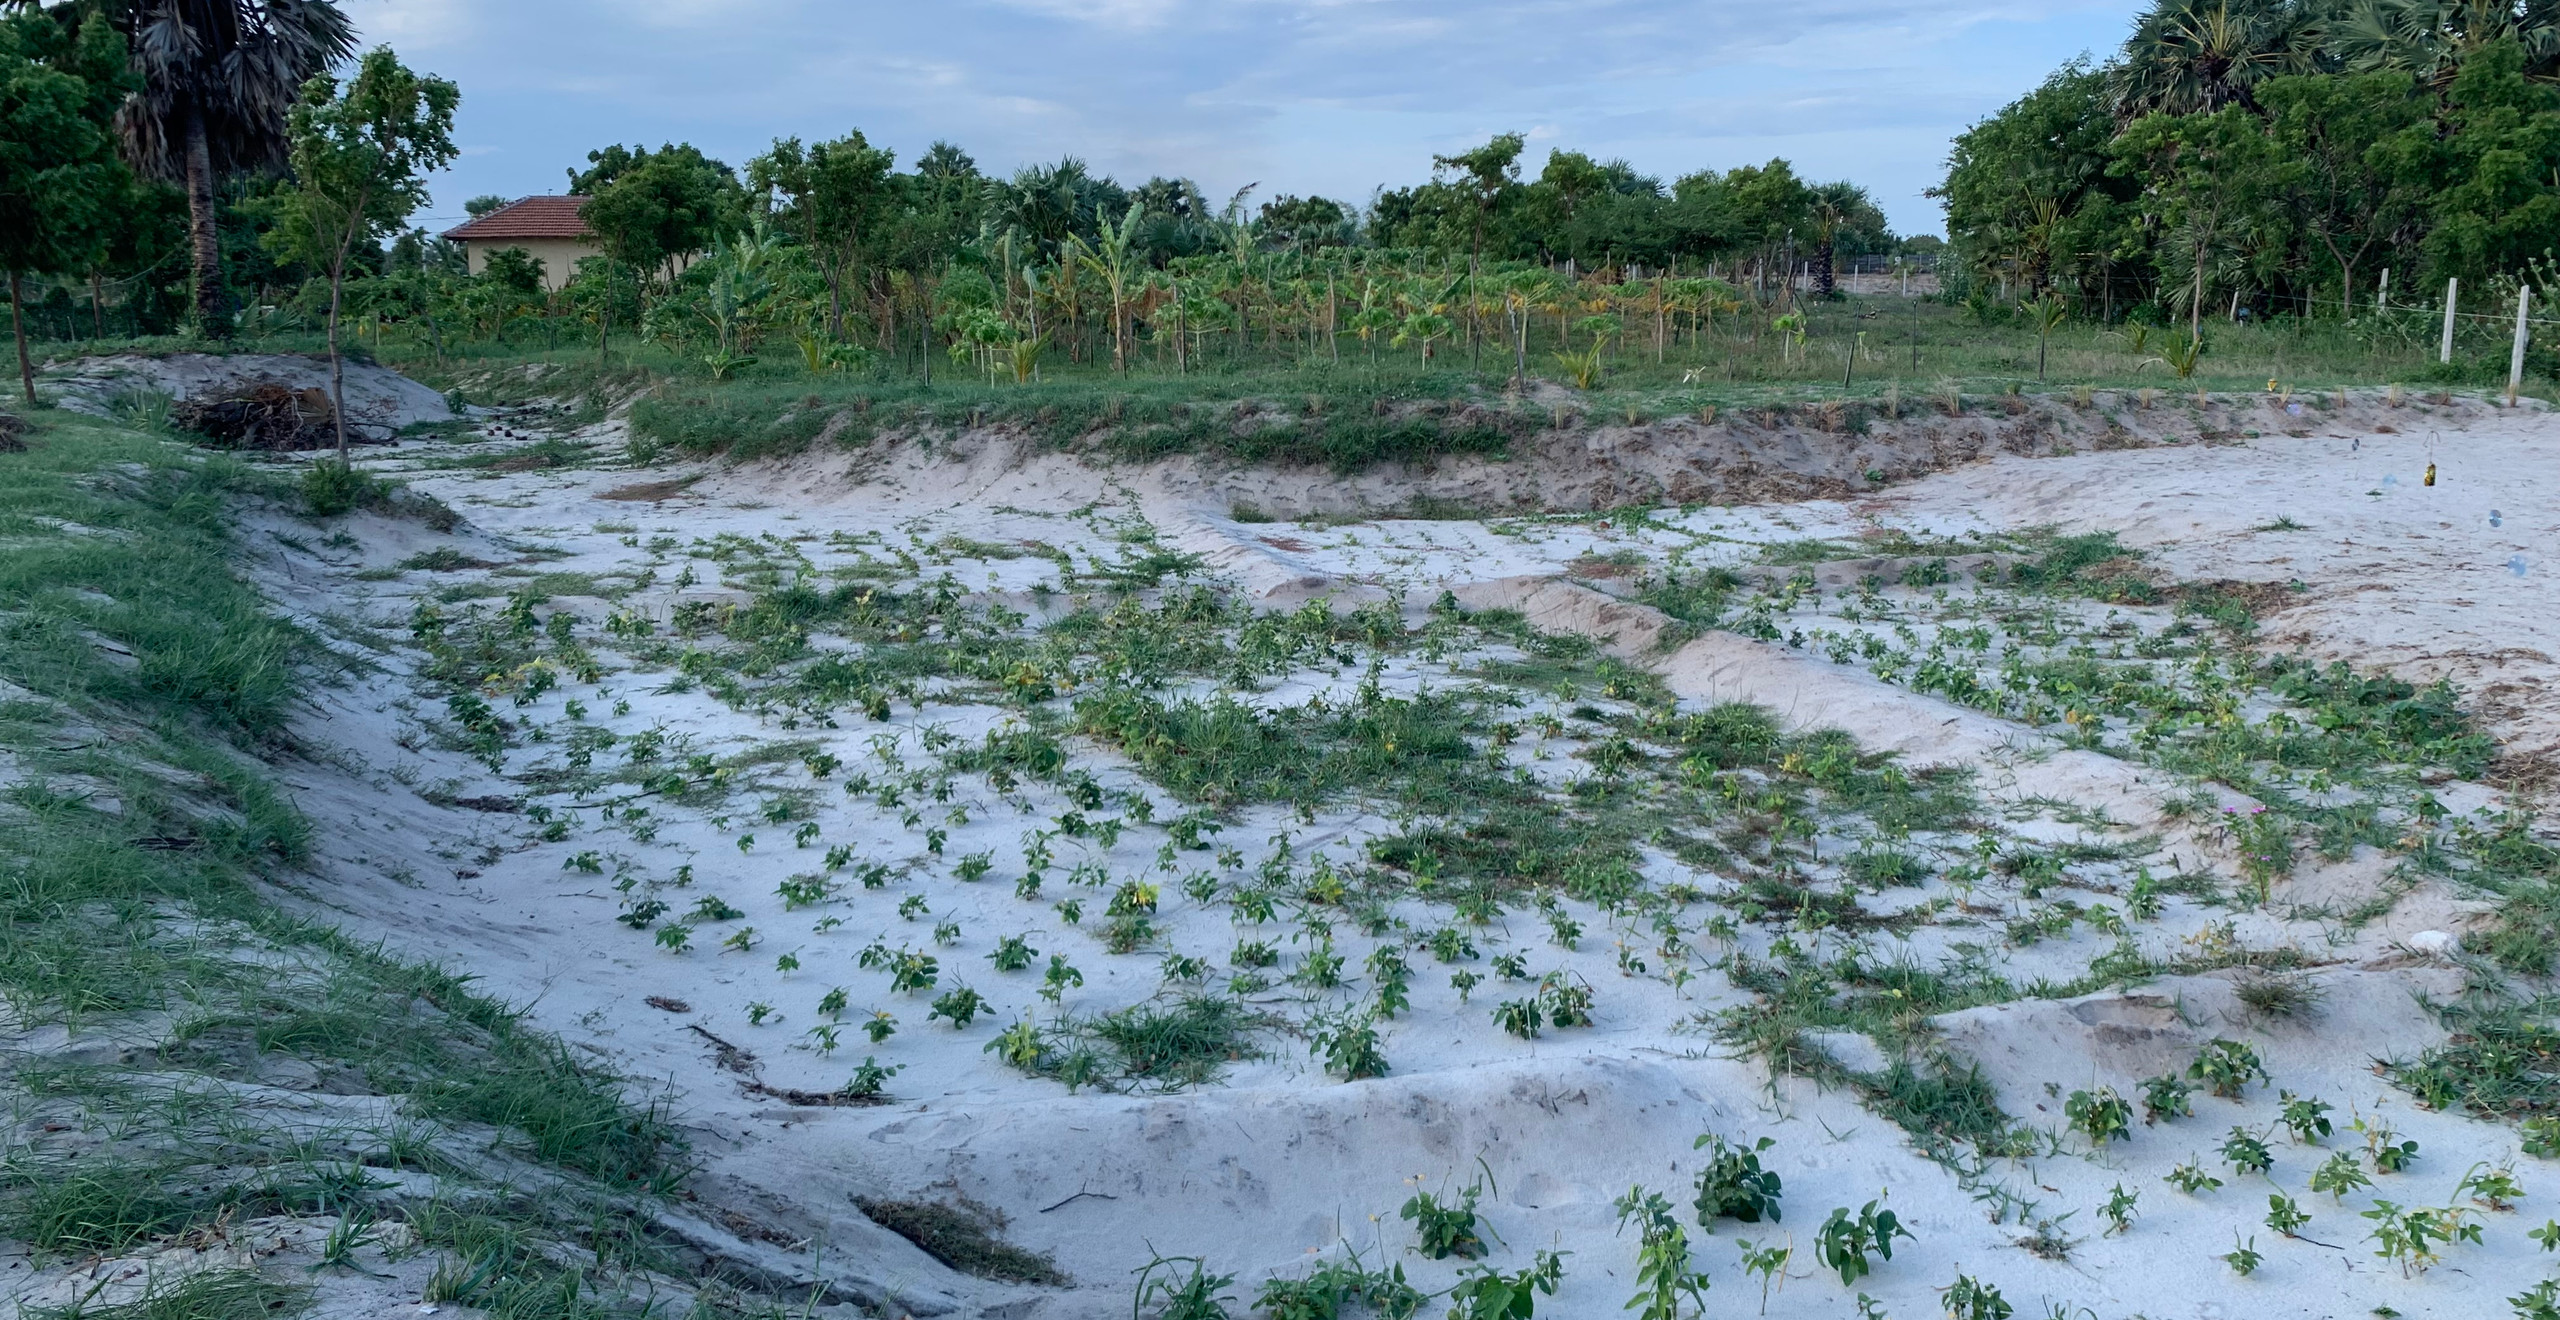 Here is the original pond along with water retaining crops we planted. Namely rice and cow pea.